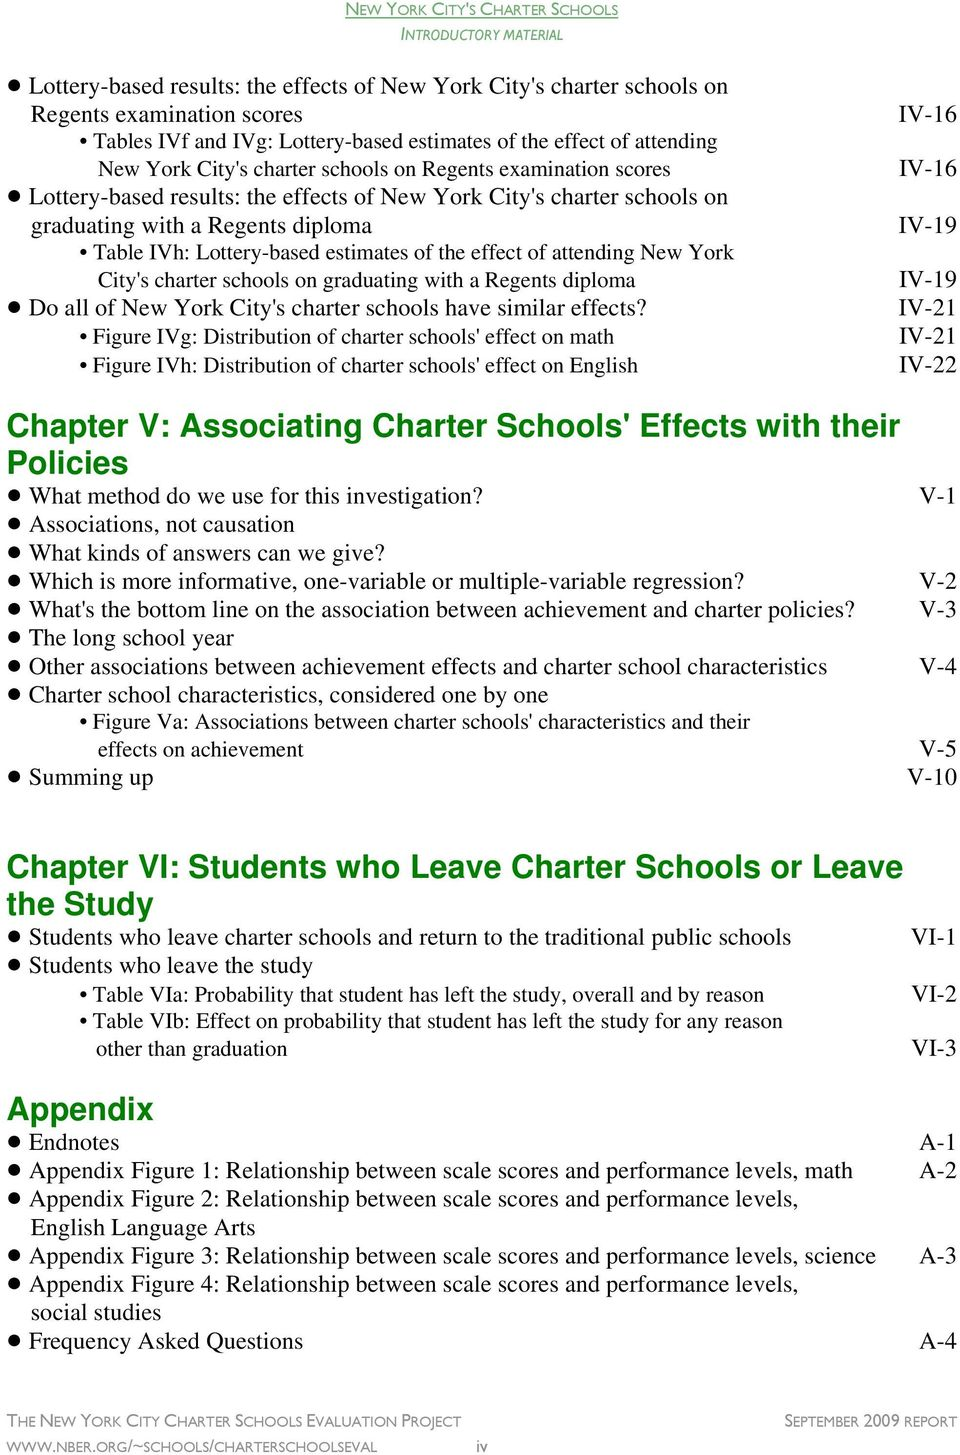 charter schools on Regents examination scores IV-16!